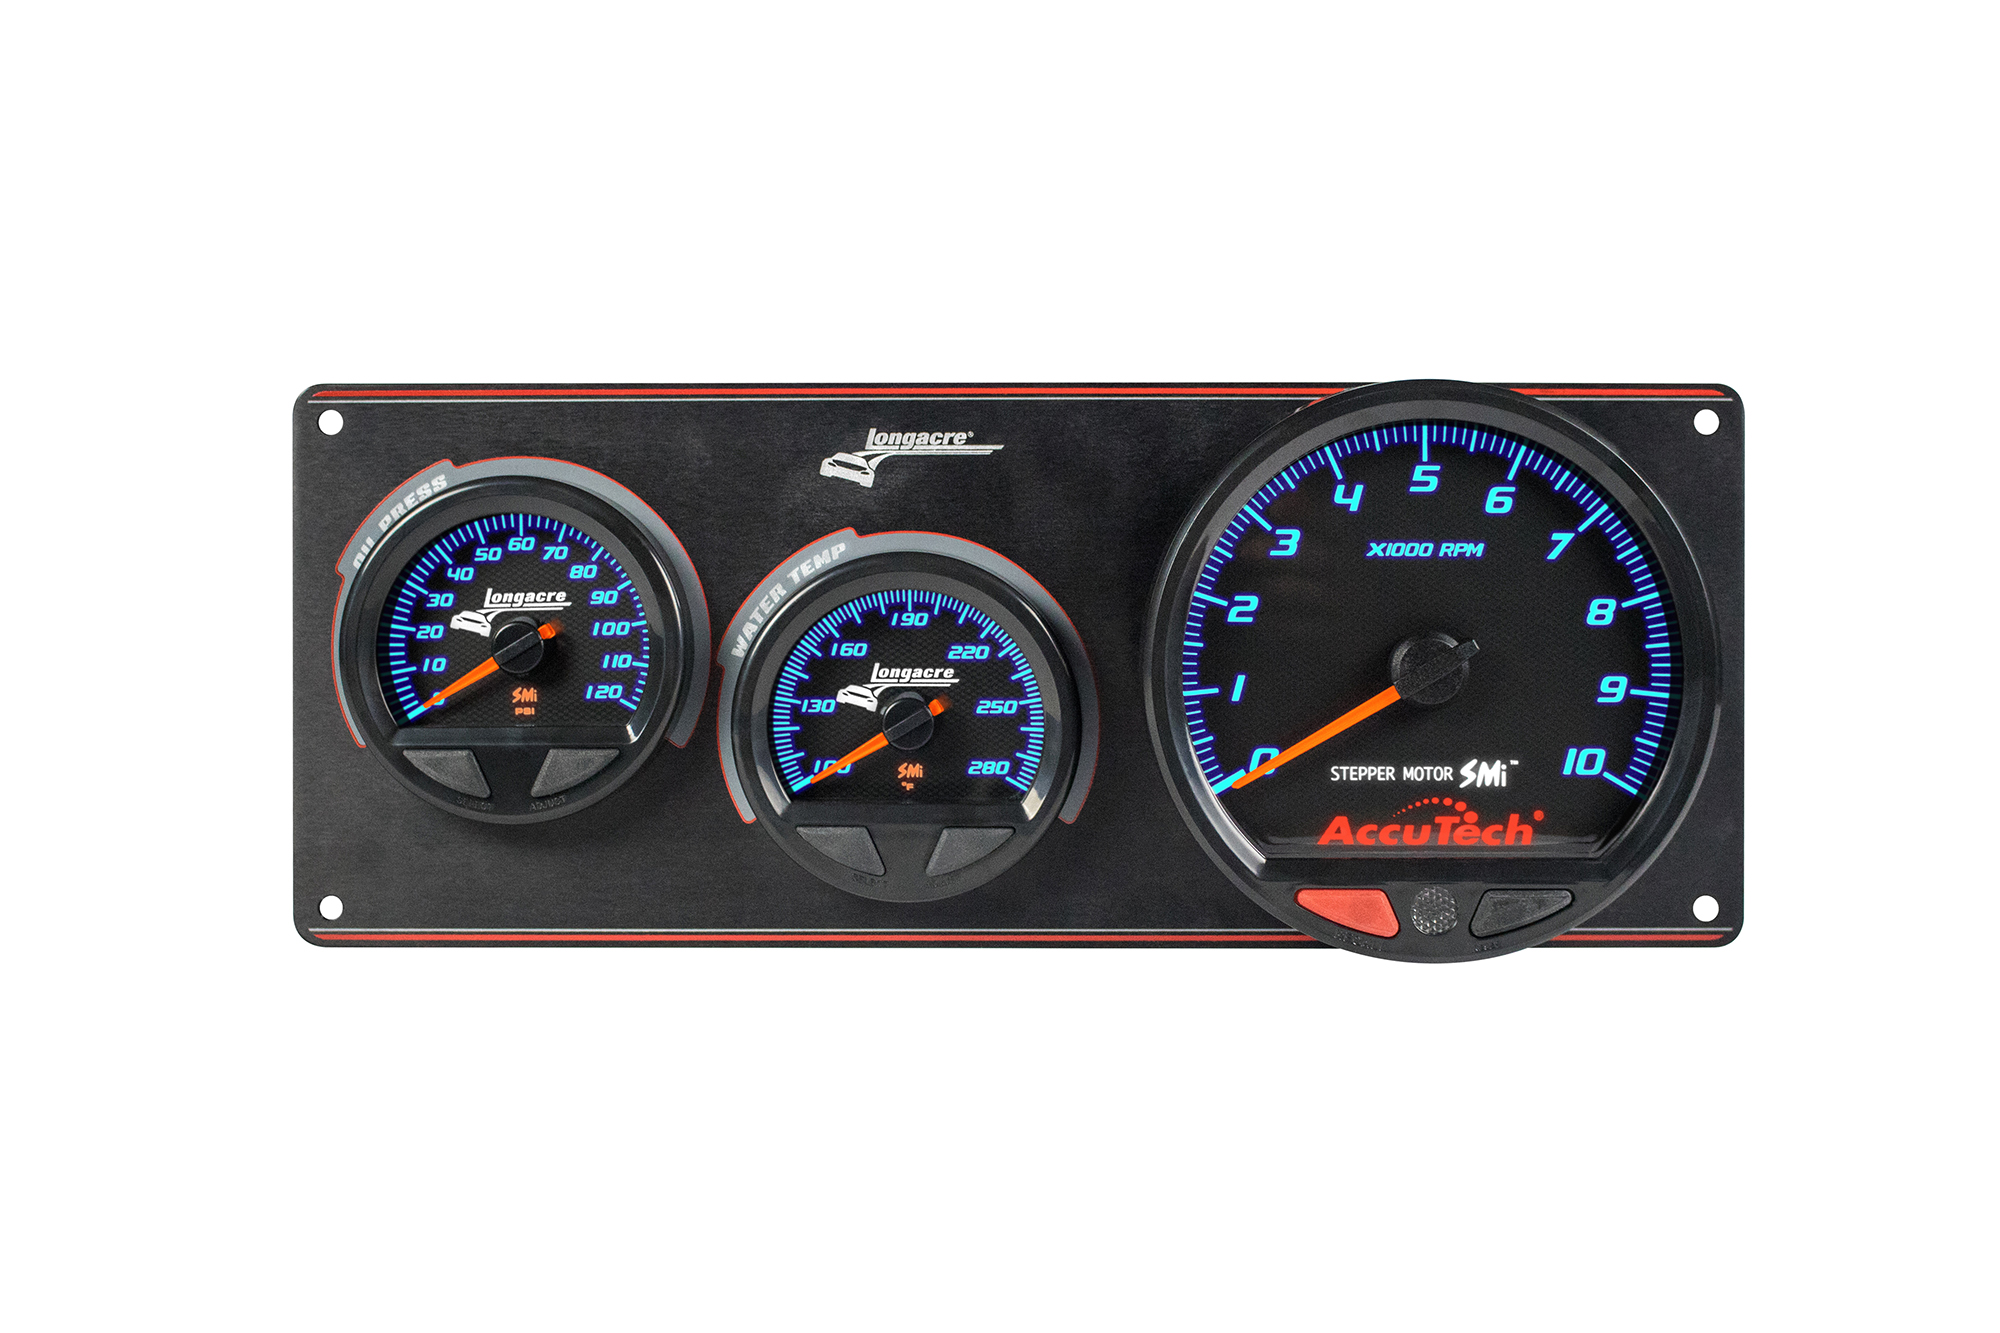 SMi™ Elite Waterproof Gauge Panel, 2 Gauge Oil Pressure/Water Temperature/Tach